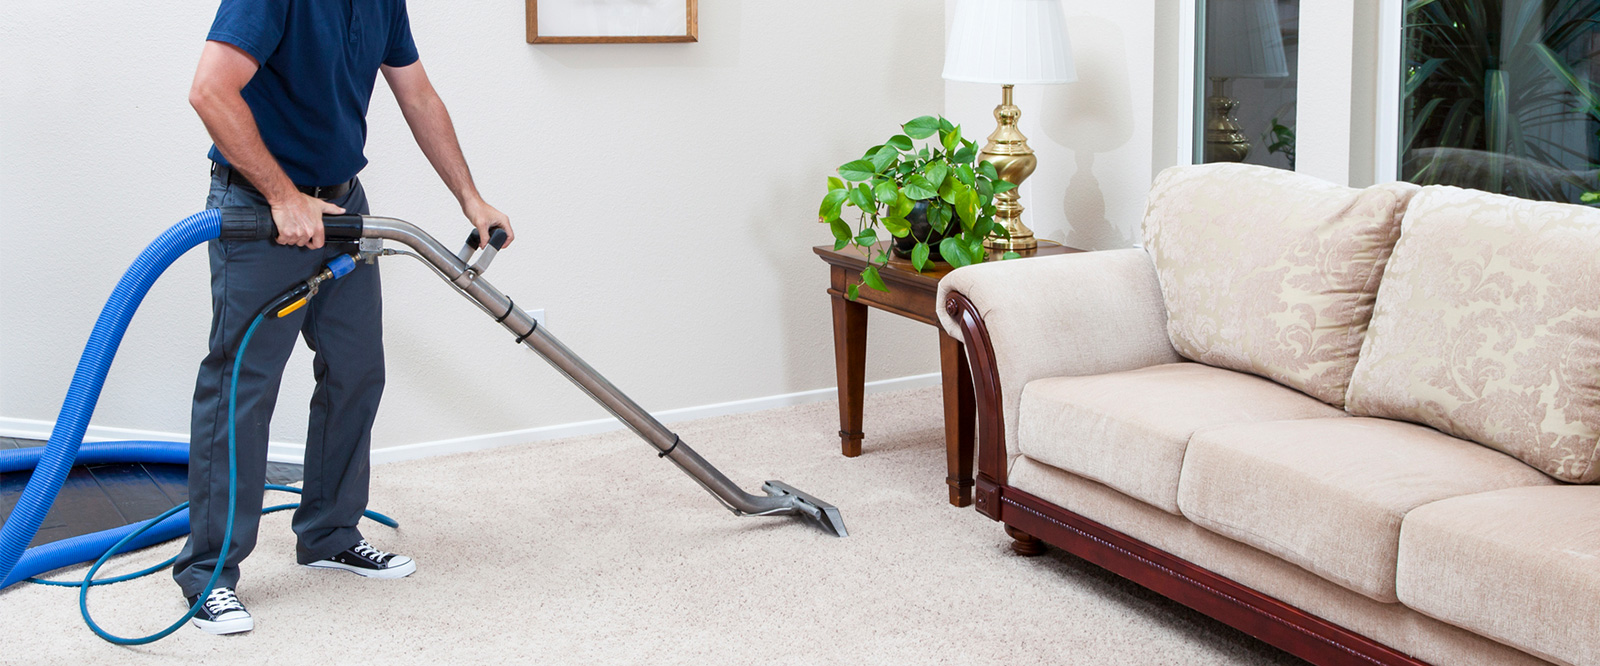 Importance of professional carpet cleaning service